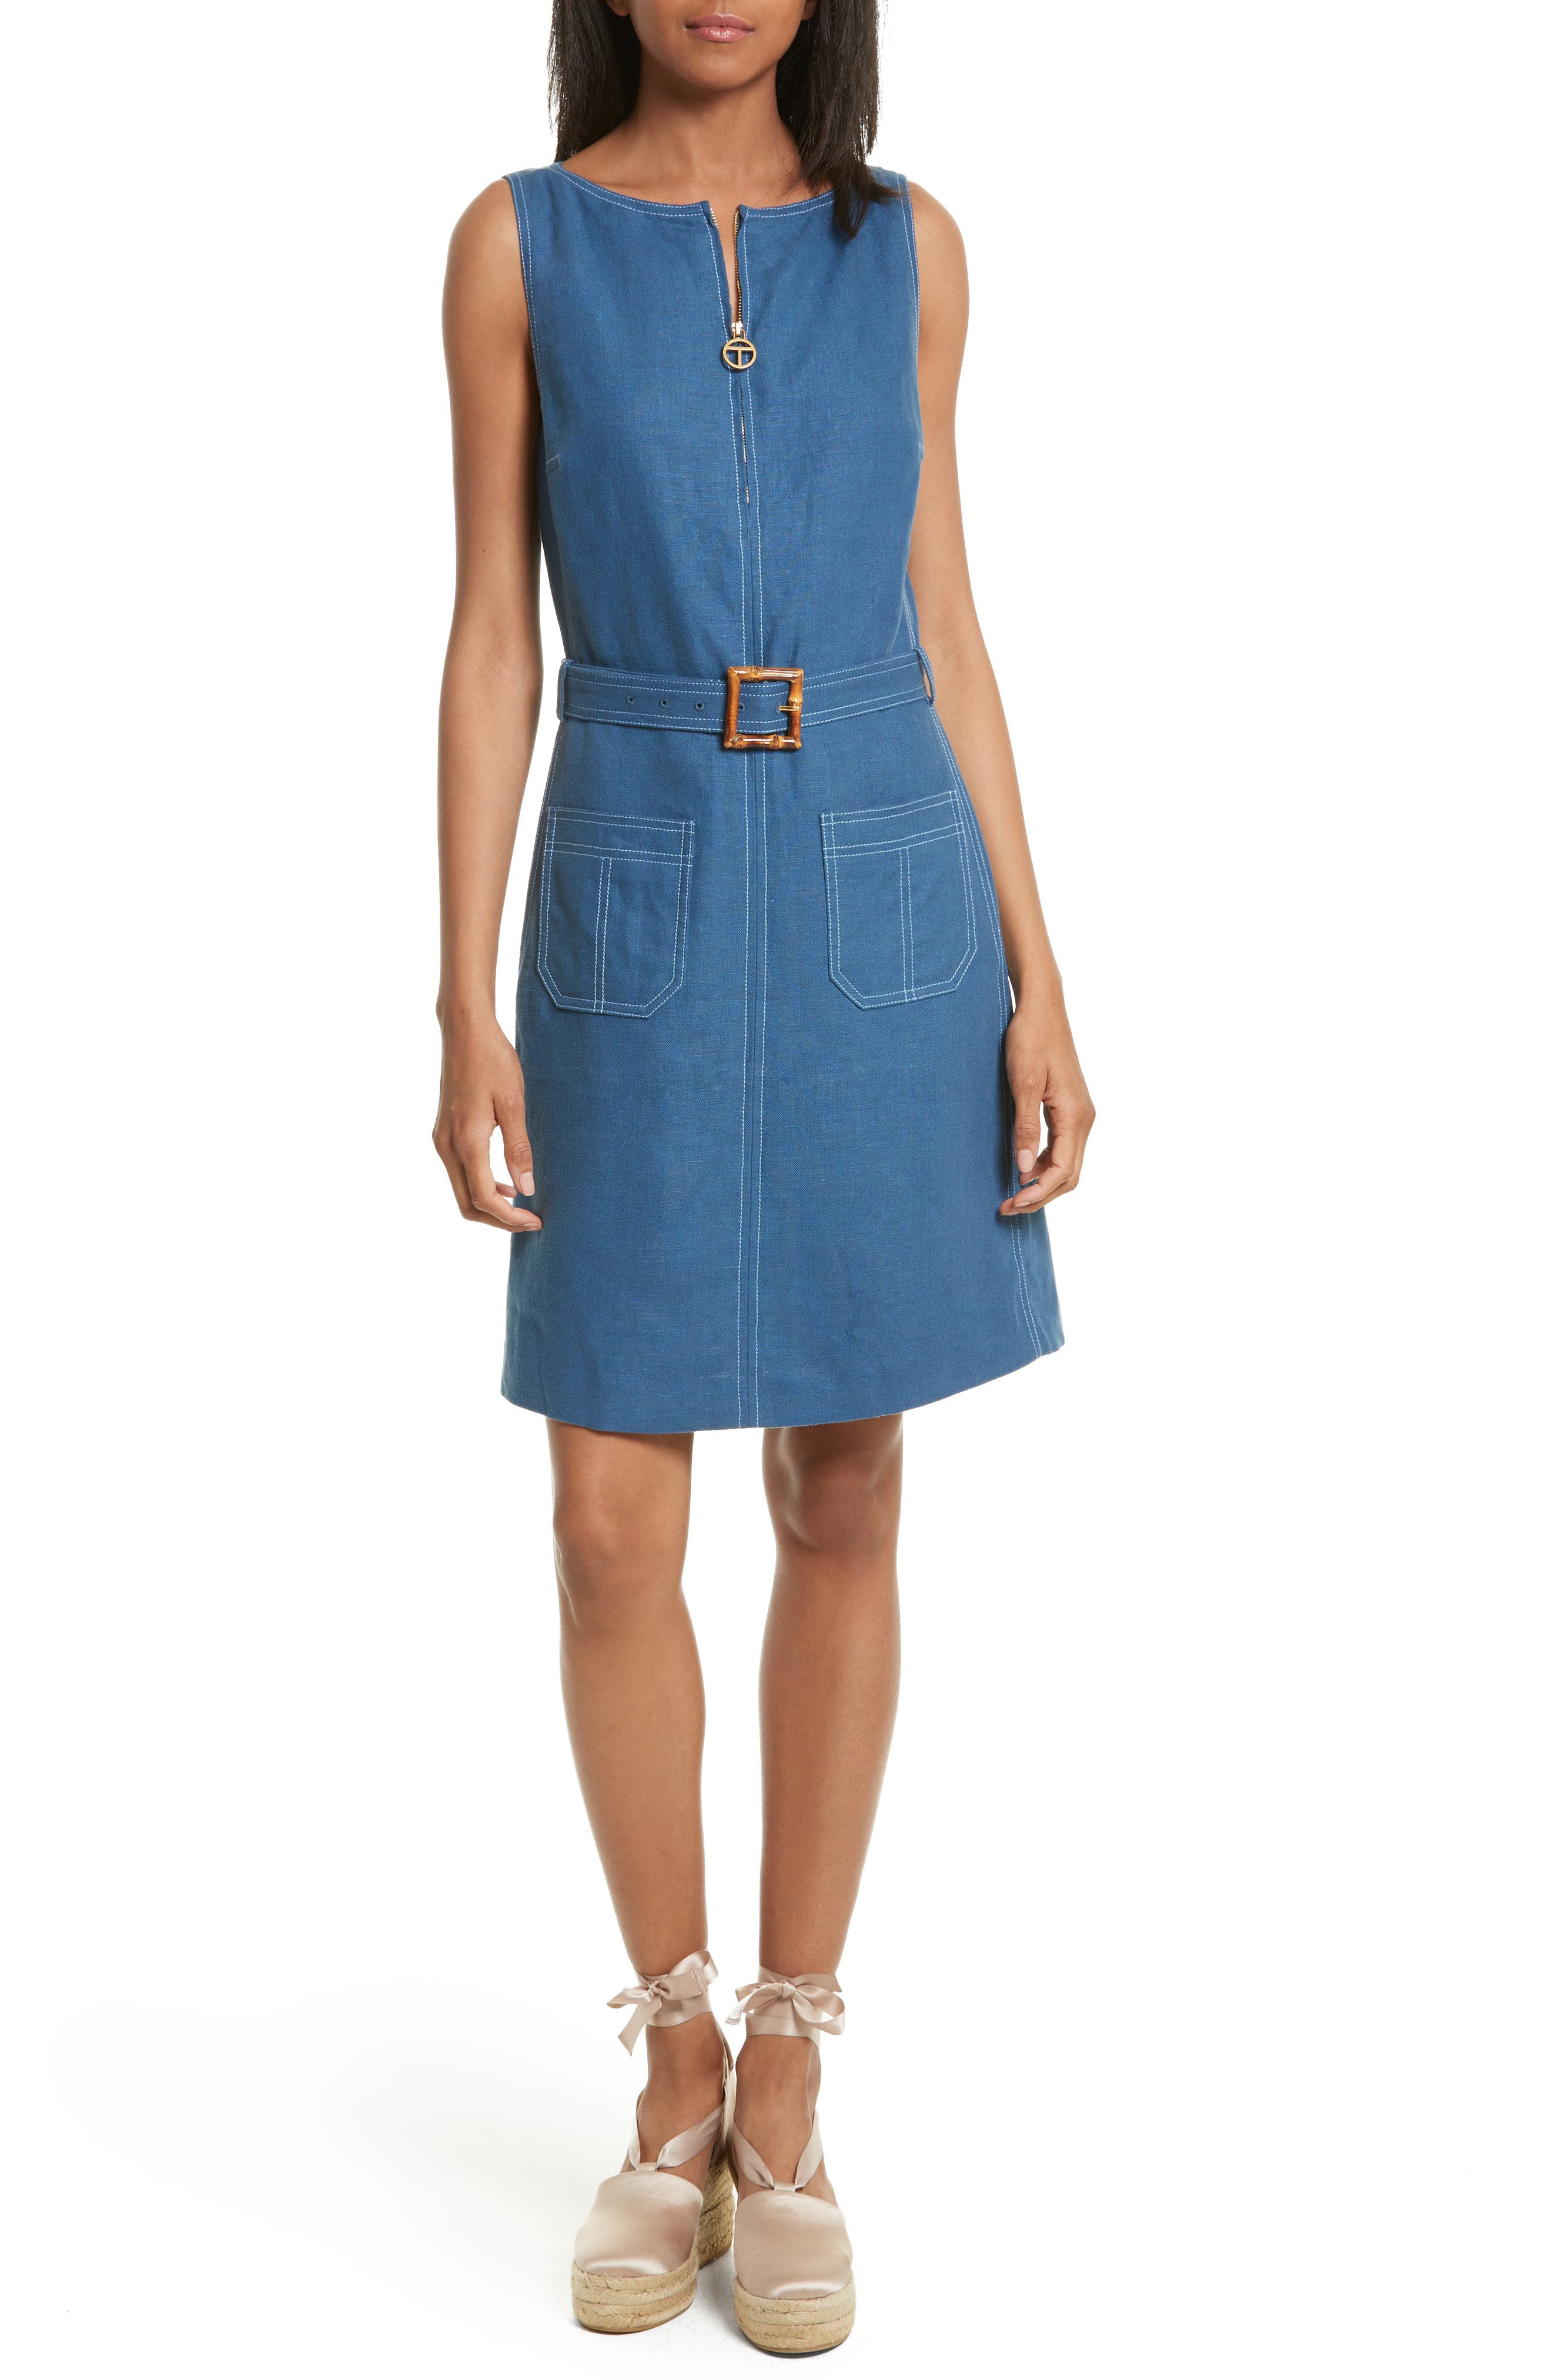 Tory Burch Nadia Linen A-Line Dress